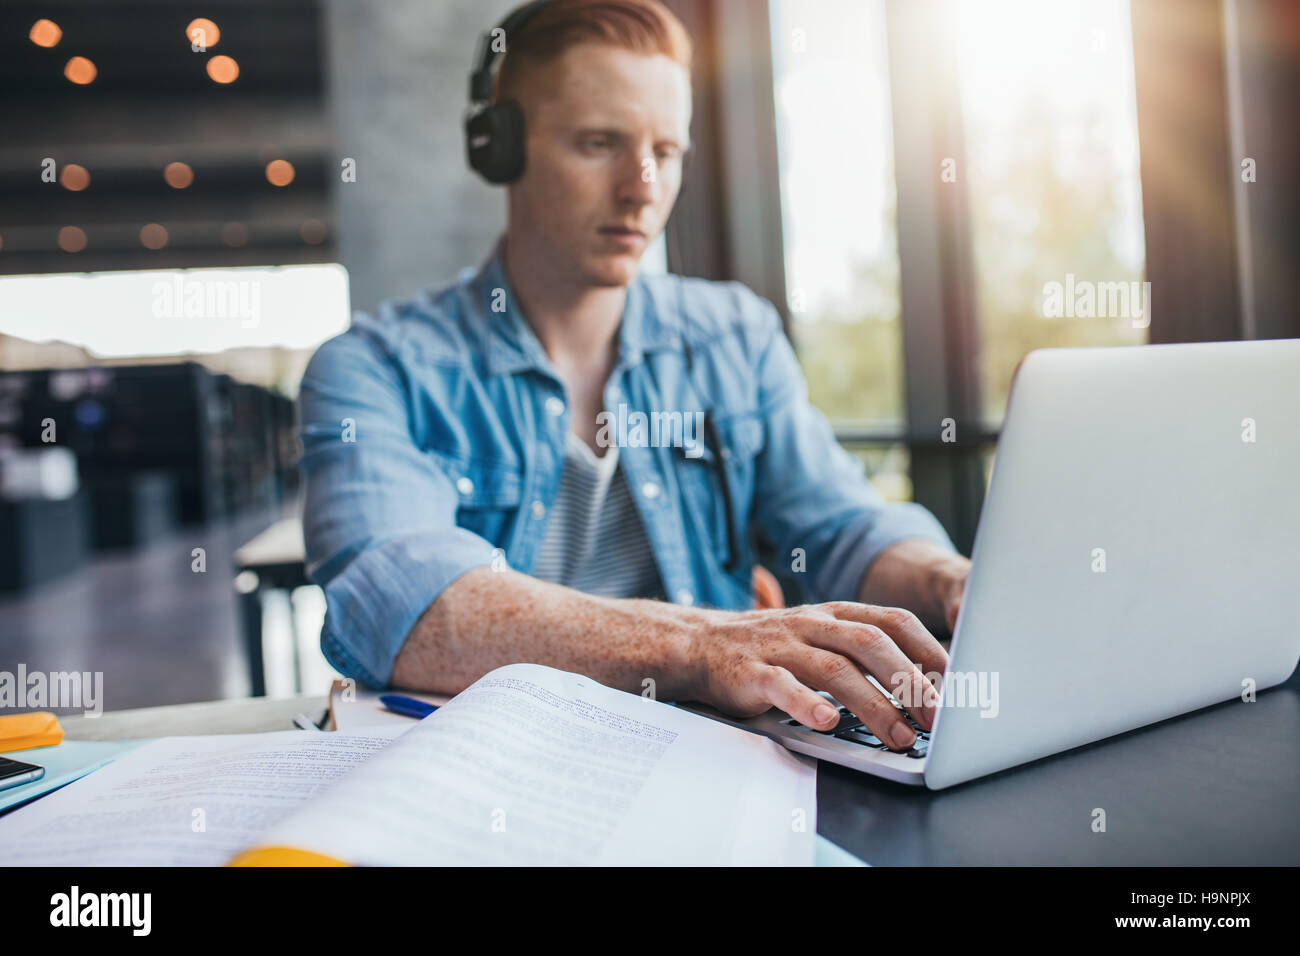 Male student in university library using laptop. Young man studying on school assignment. - Stock Image